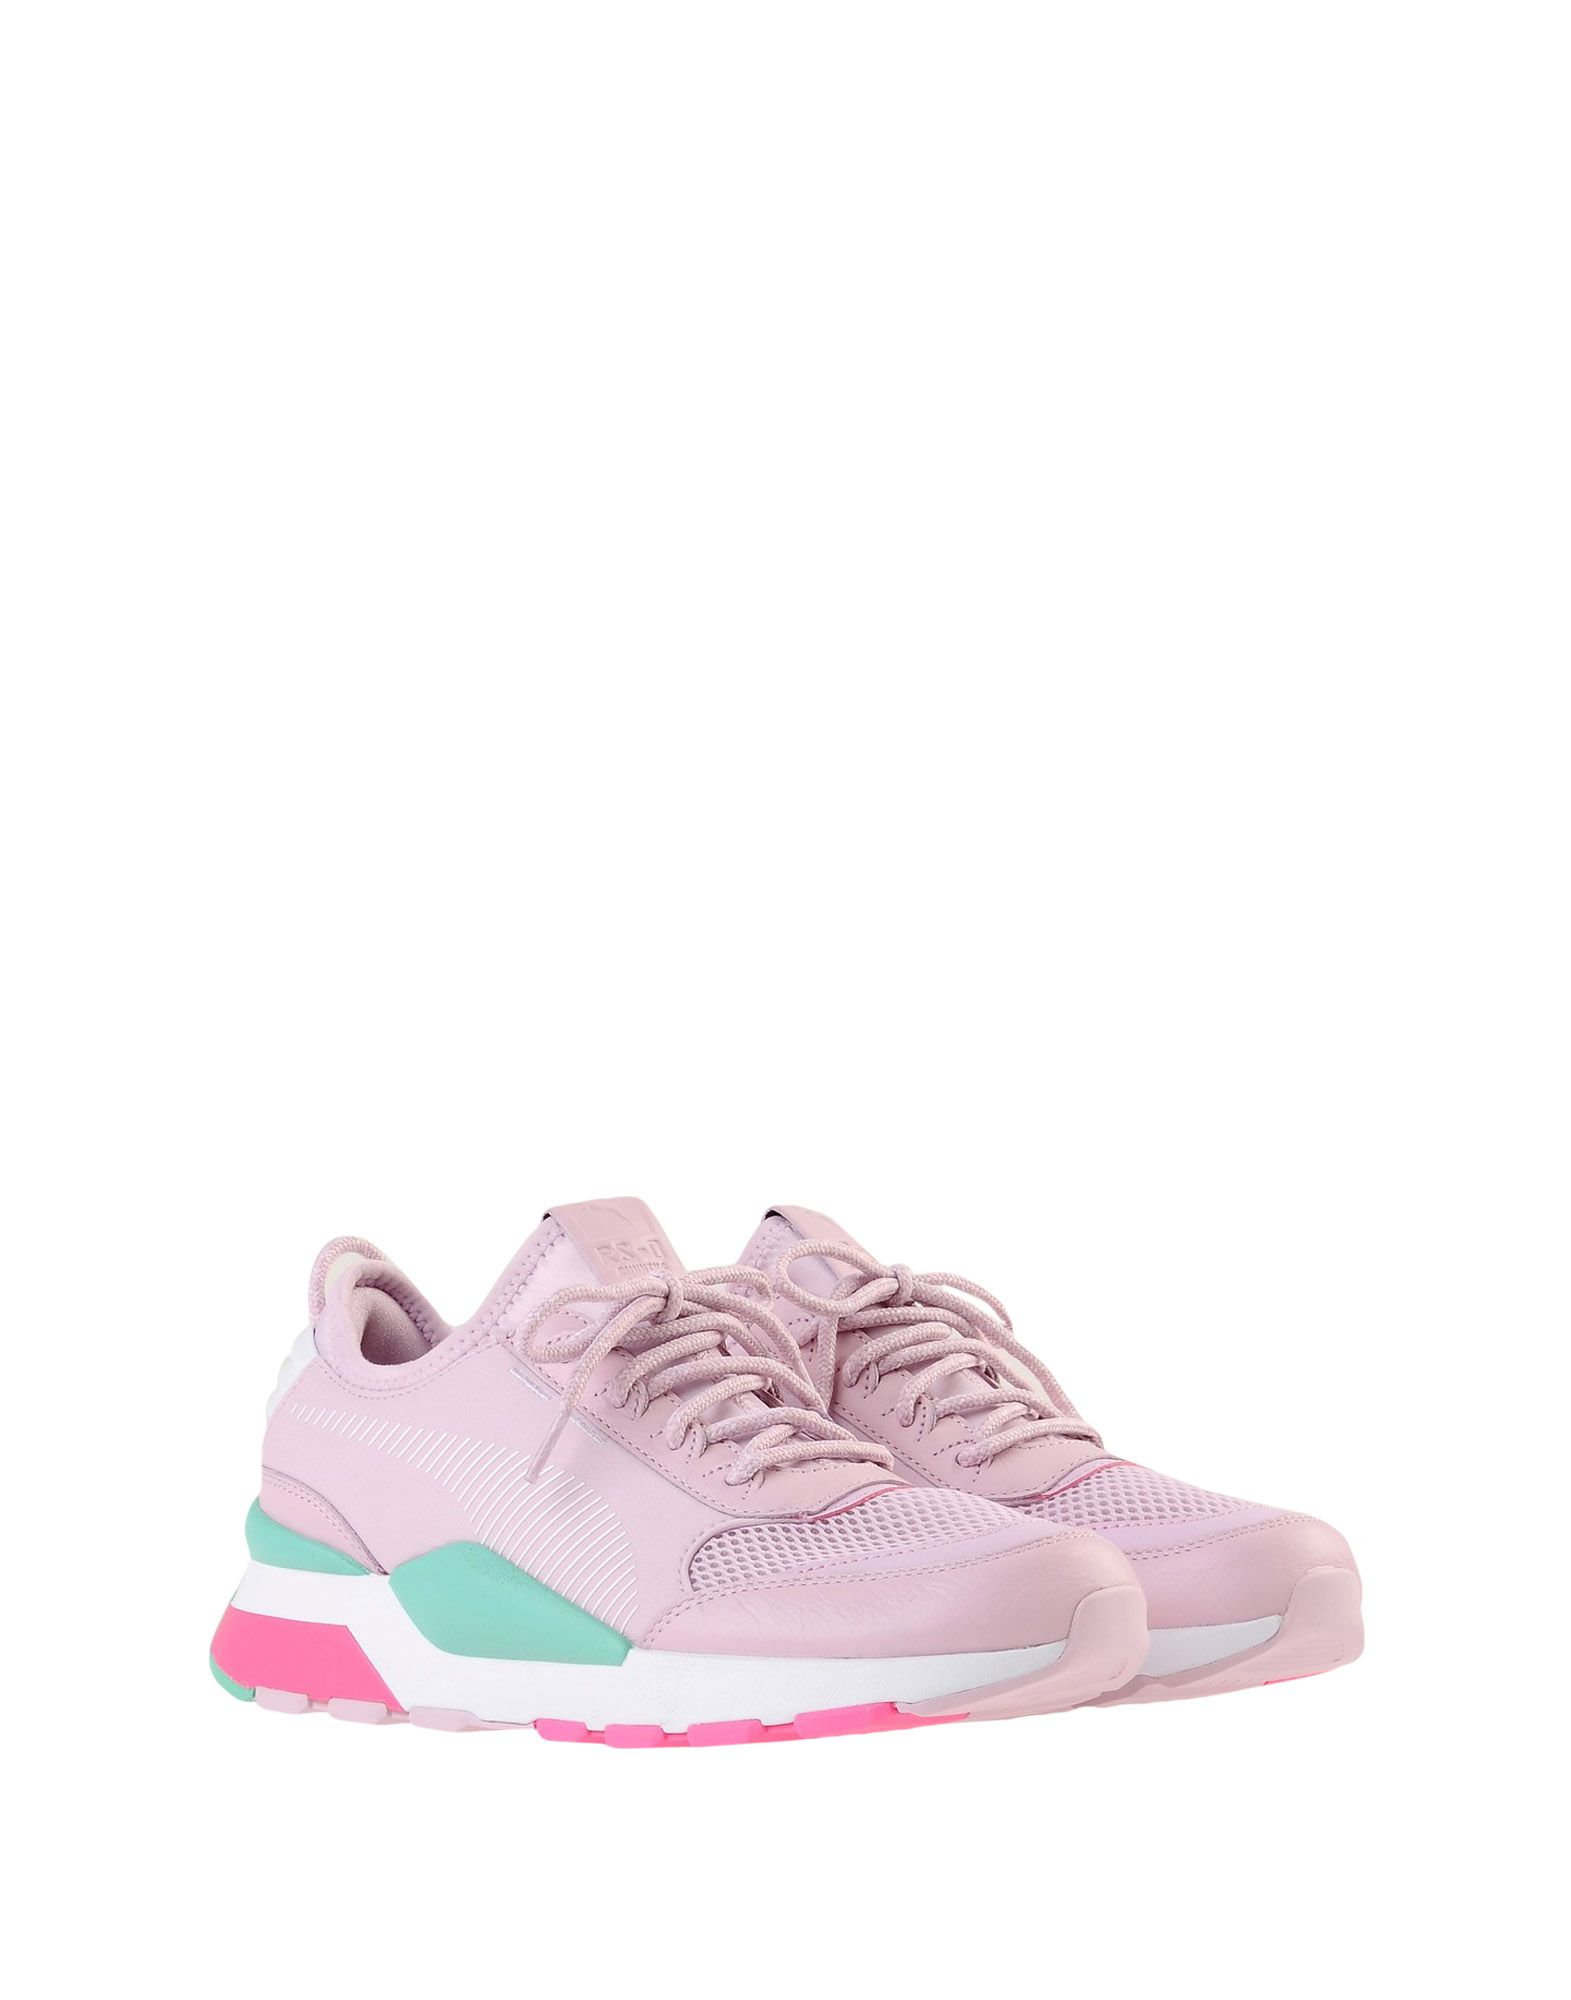 Puma Rs-0 Play Play Play Winsome Orchid-Biscay Green - Sneakers - Men Puma Sneakers online on  Australia - 11541361OF d67a36